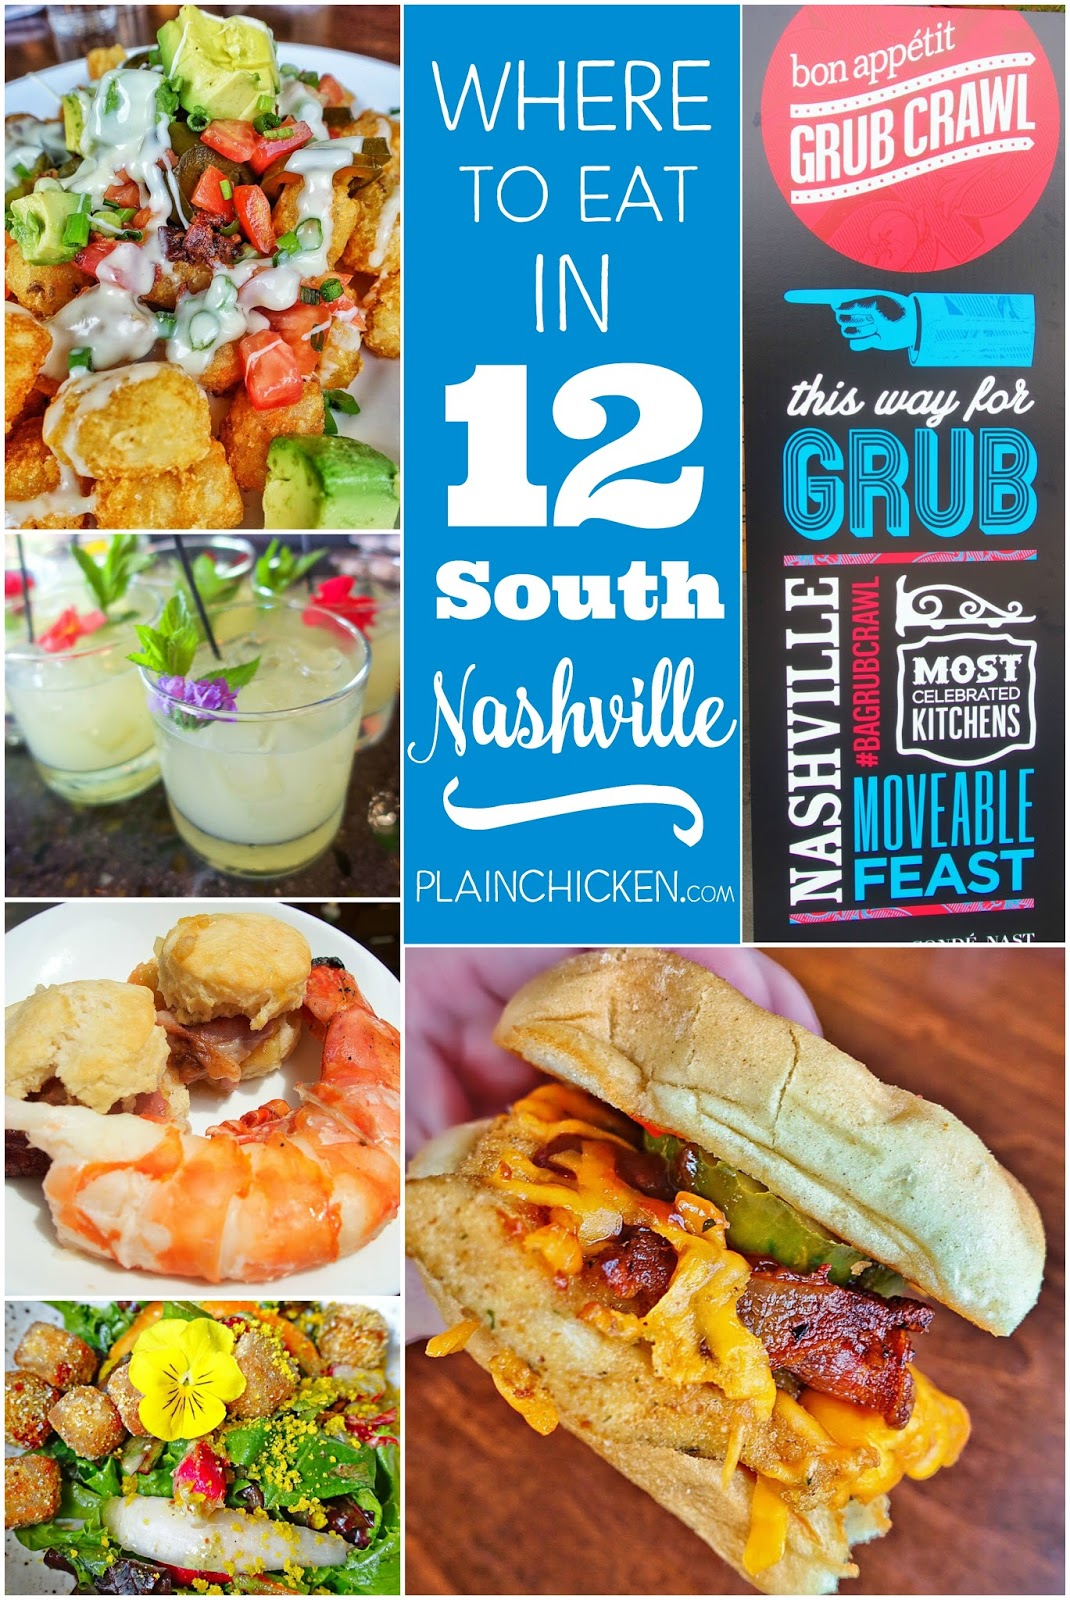 Where to Eat in Nashville, TN - 12 South neighborhood. Nashville's hottest neighborhood! You don't want to miss these places! Urban Grub, Epice, The Flipside and Josephine. SO much great food!